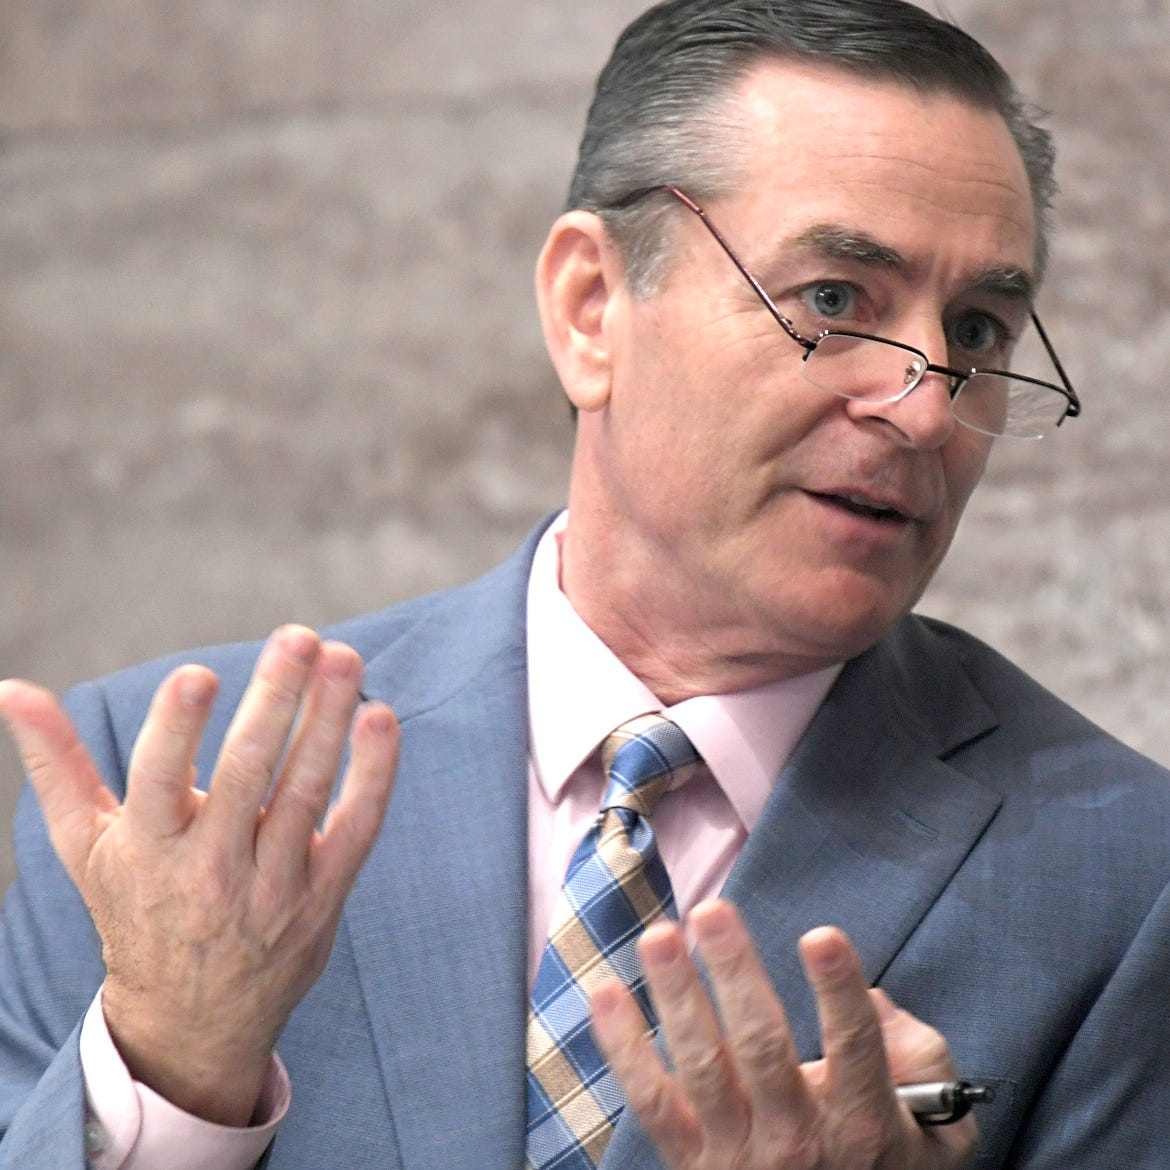 'This is 2019. We've got to change it:' Glen Casada admits there may be racism issue at statehouse